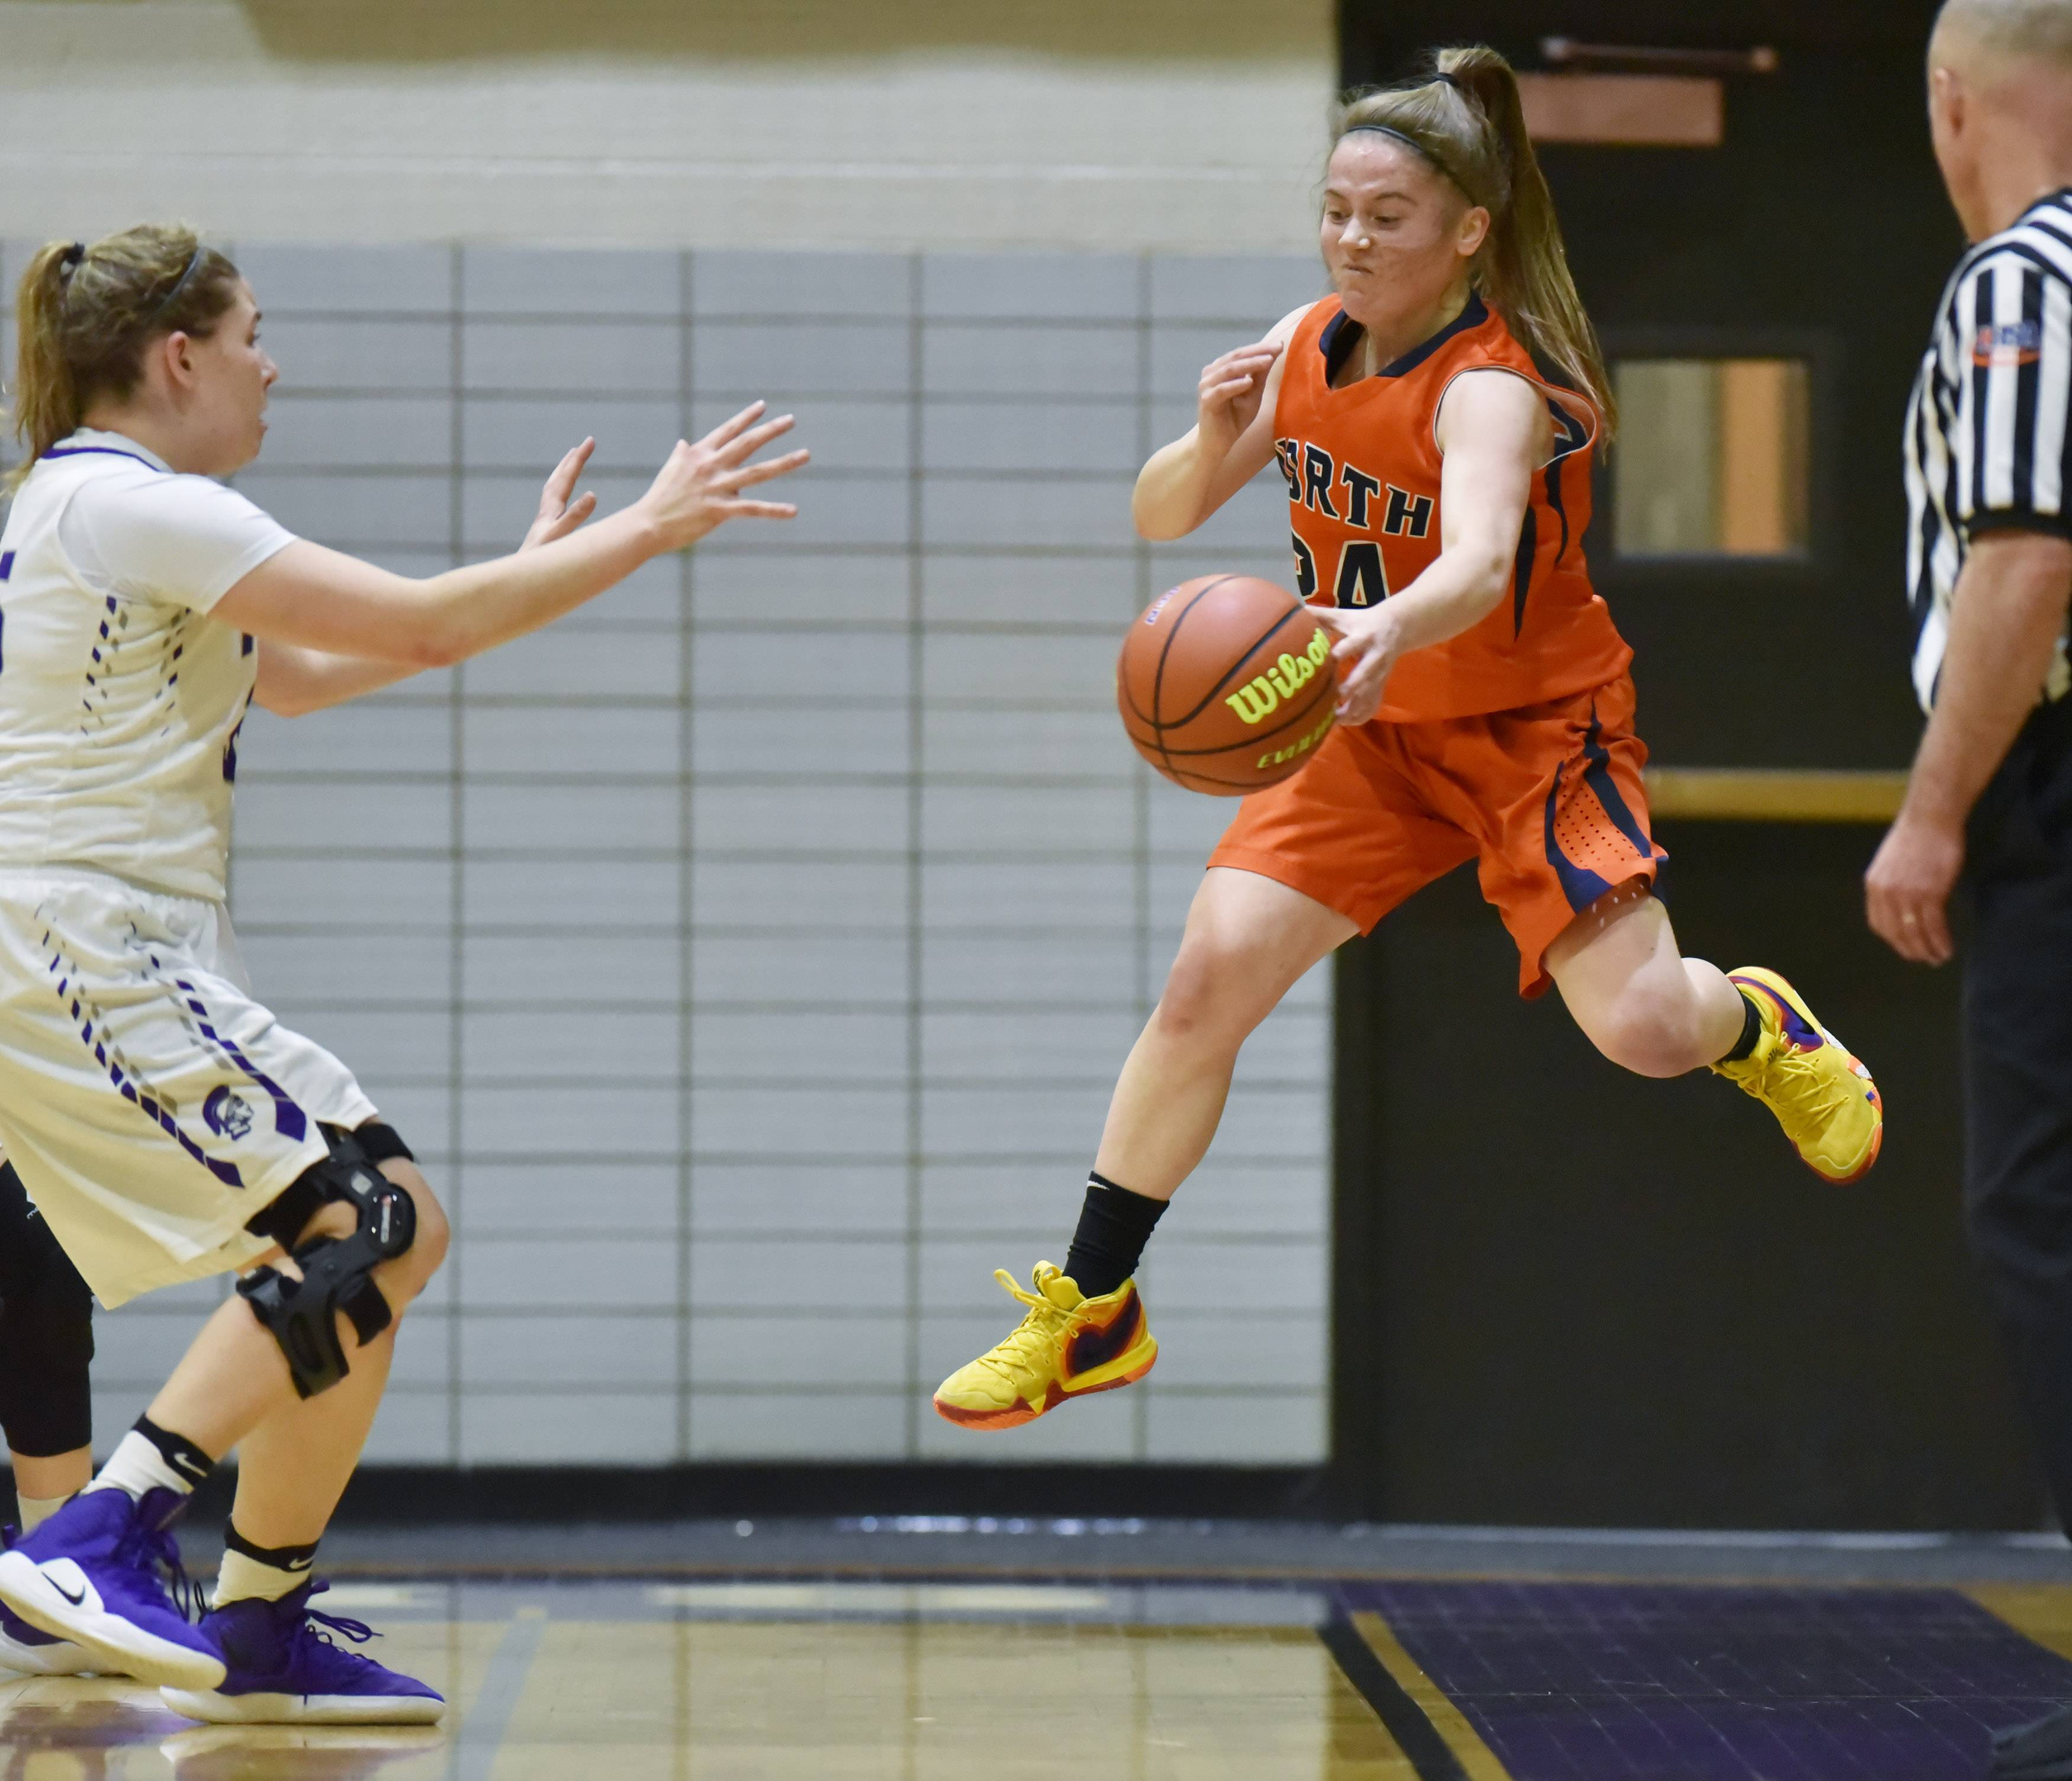 Naperville North's Kara Rivard saves the ball from going out of bounds against Downers Grove North in Downers Grove Wednesday.